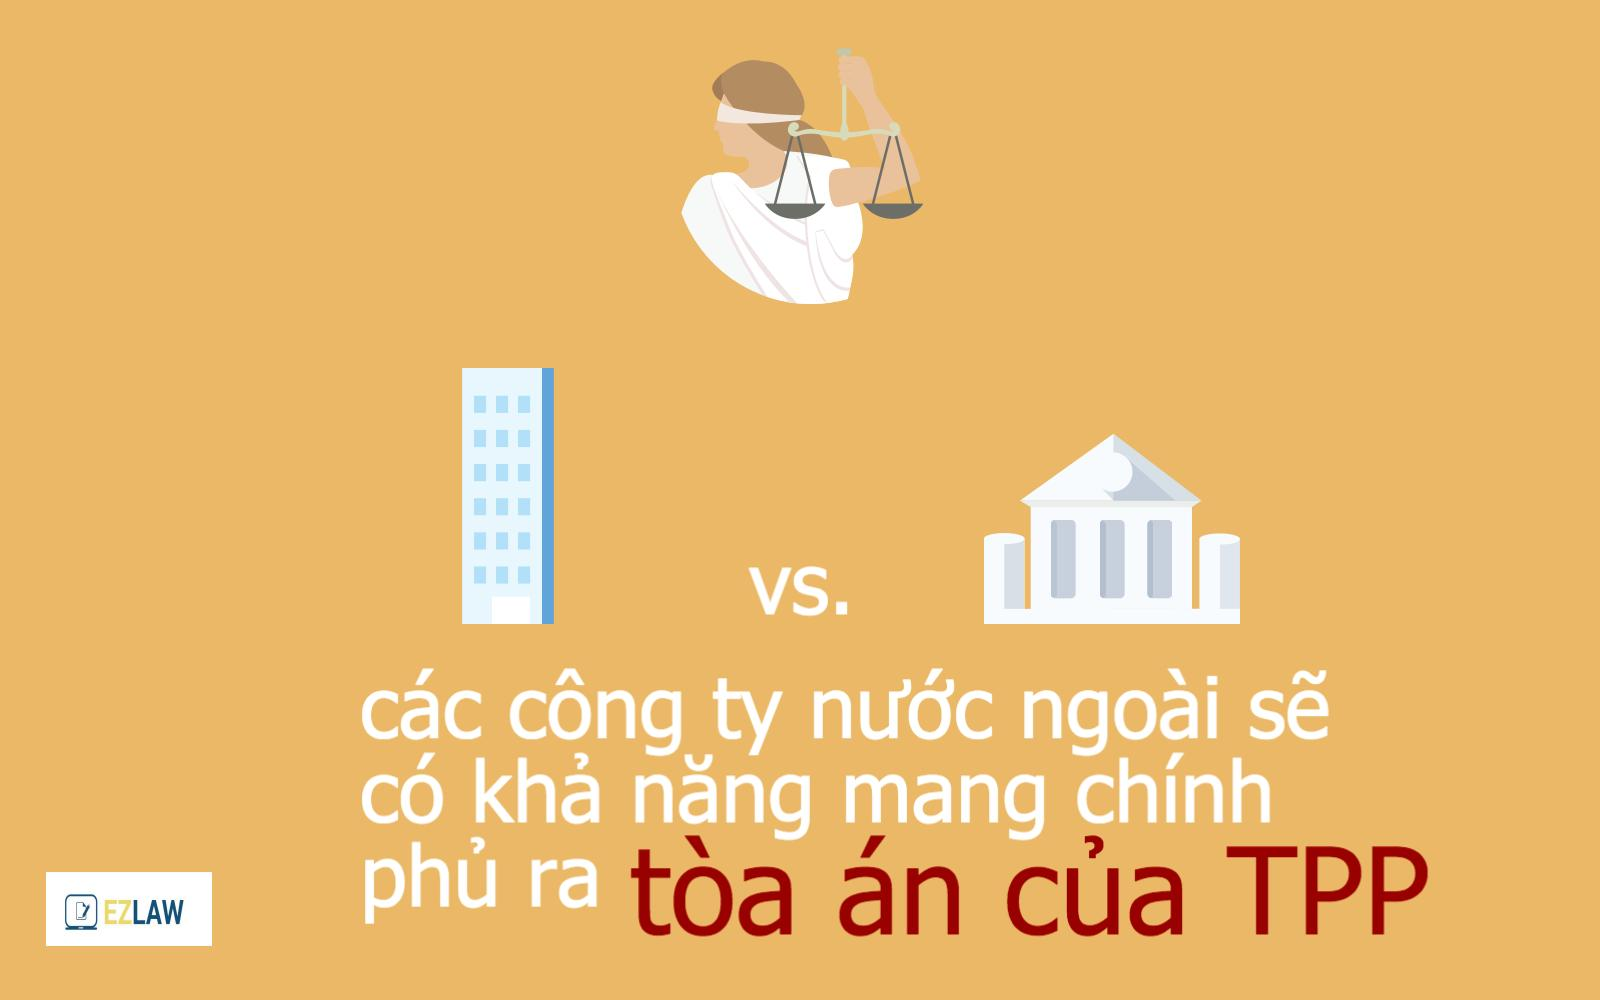 10 kien thuc can ban ve hiep dinh tpp hinh anh 9